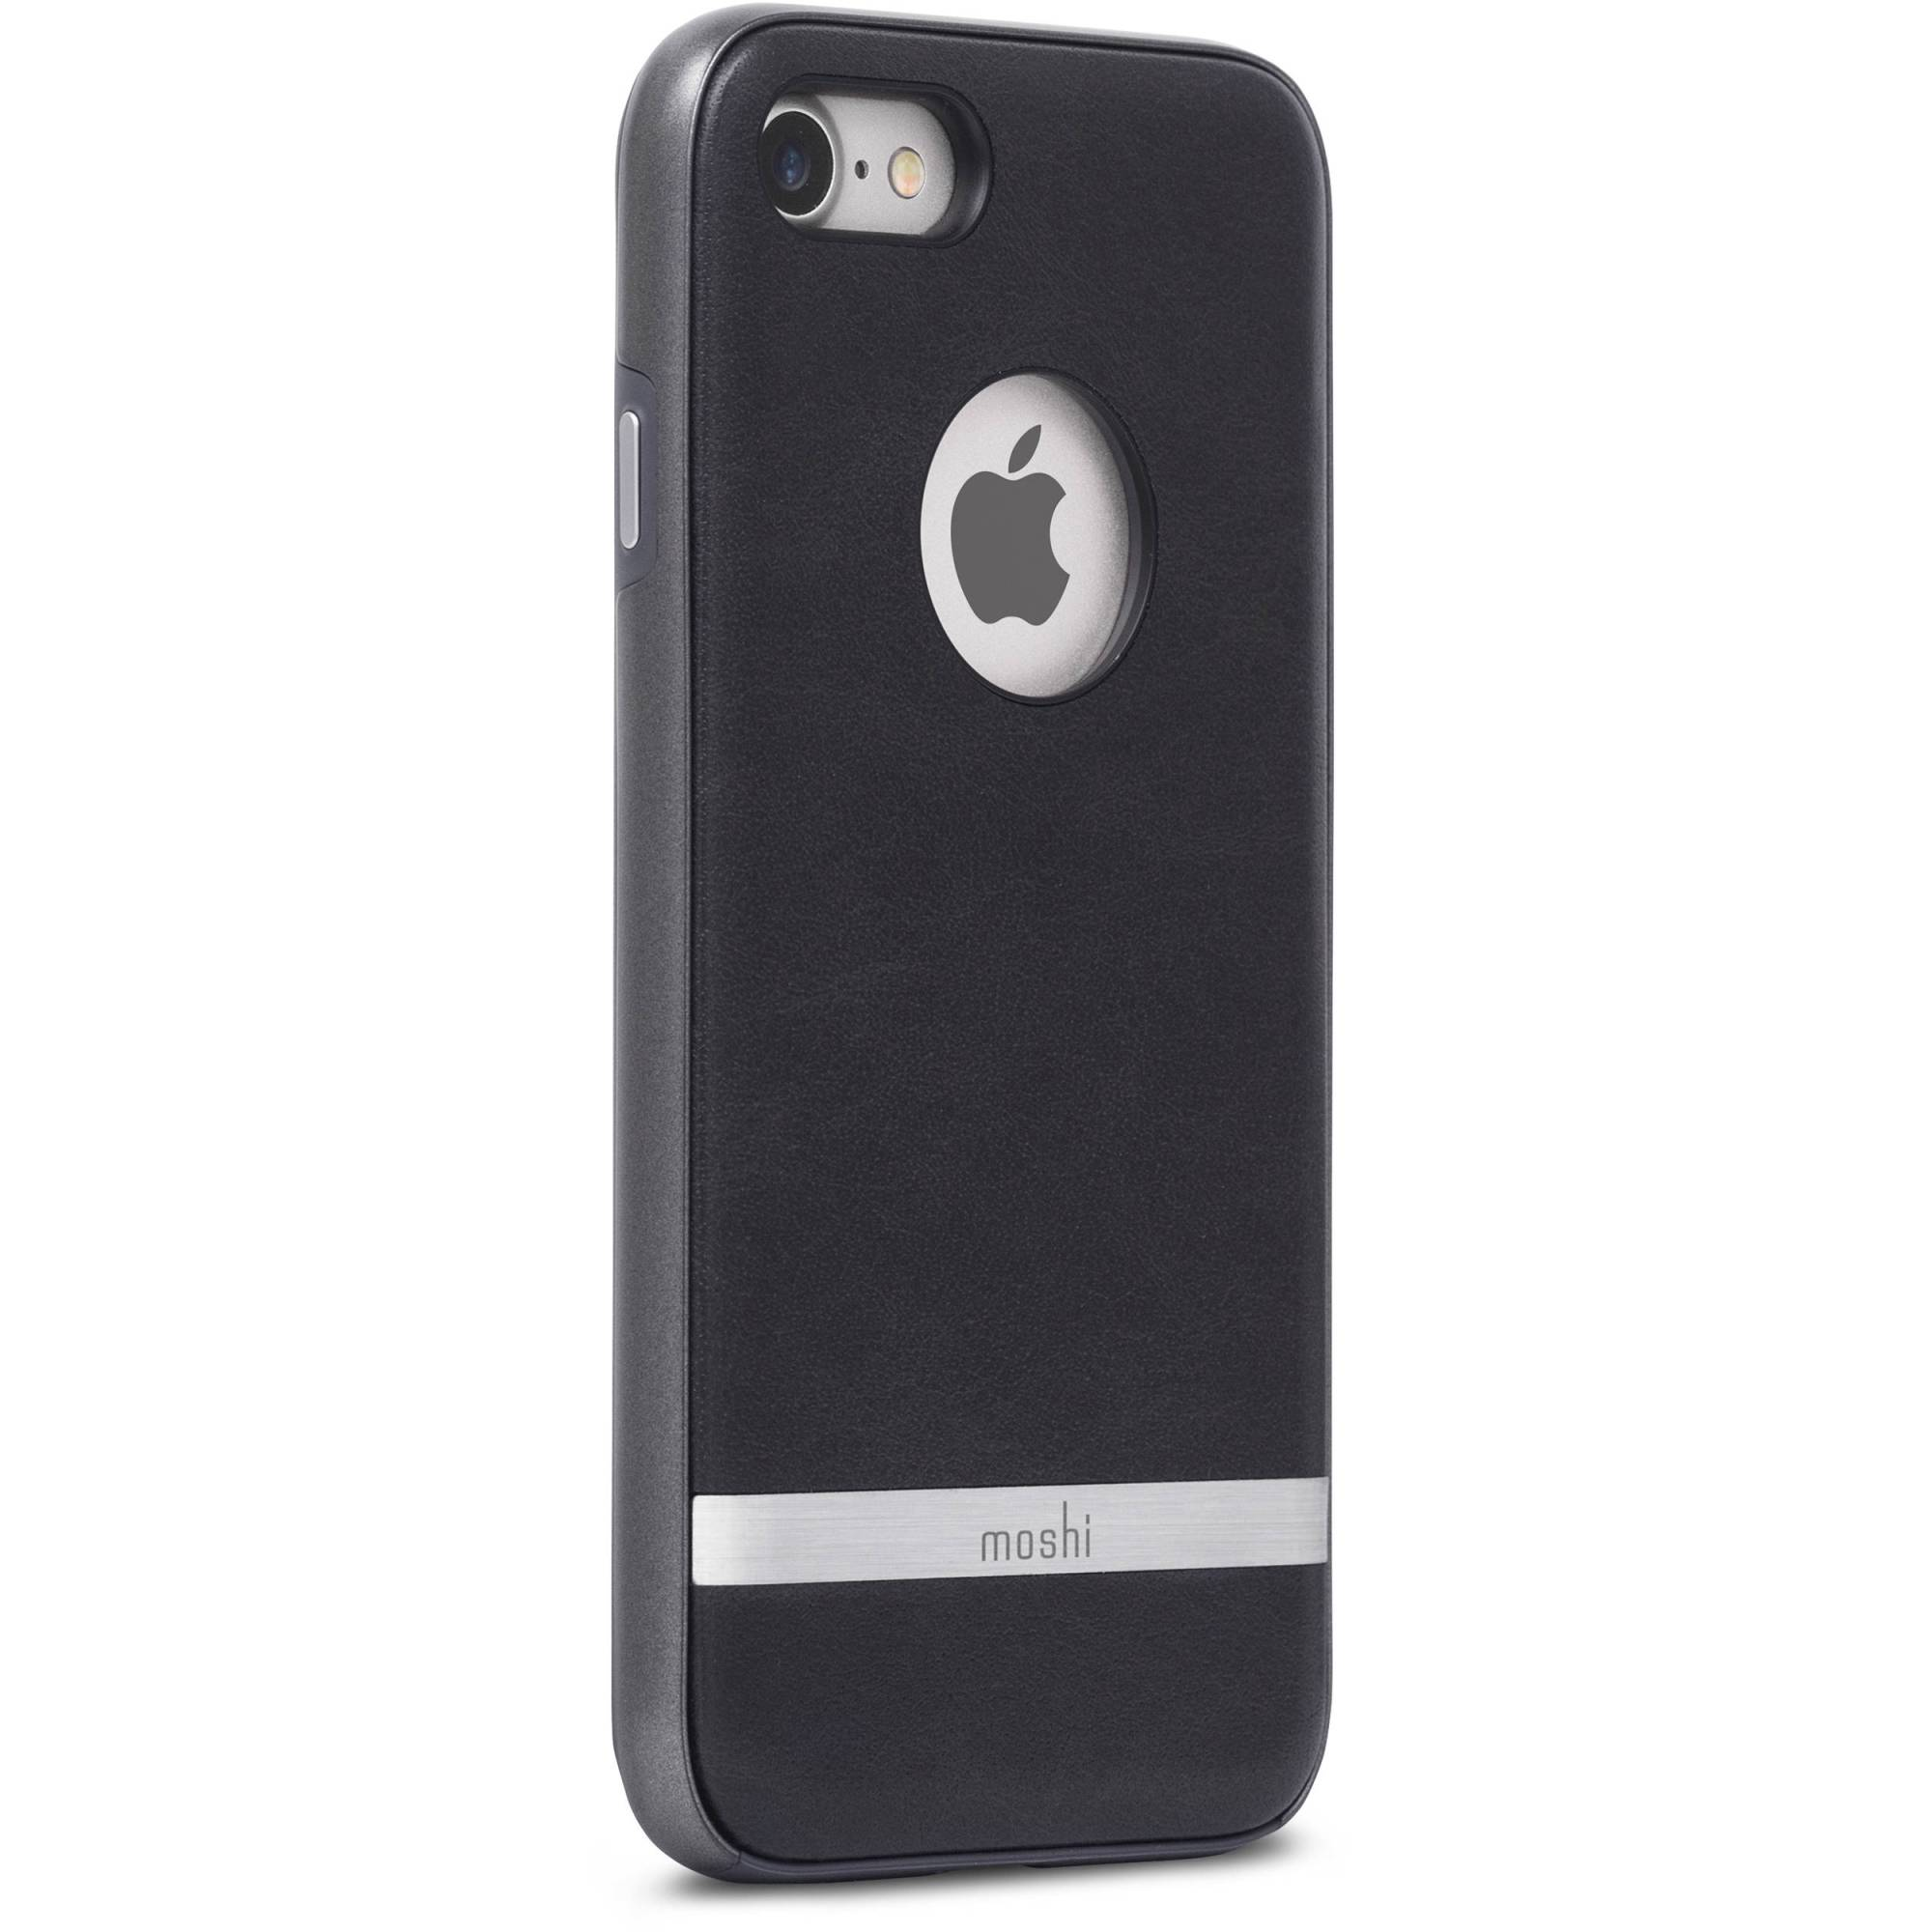 hight resolution of moshi napa case for iphone 7 black 99mo088003 b h photo video dc fuse box